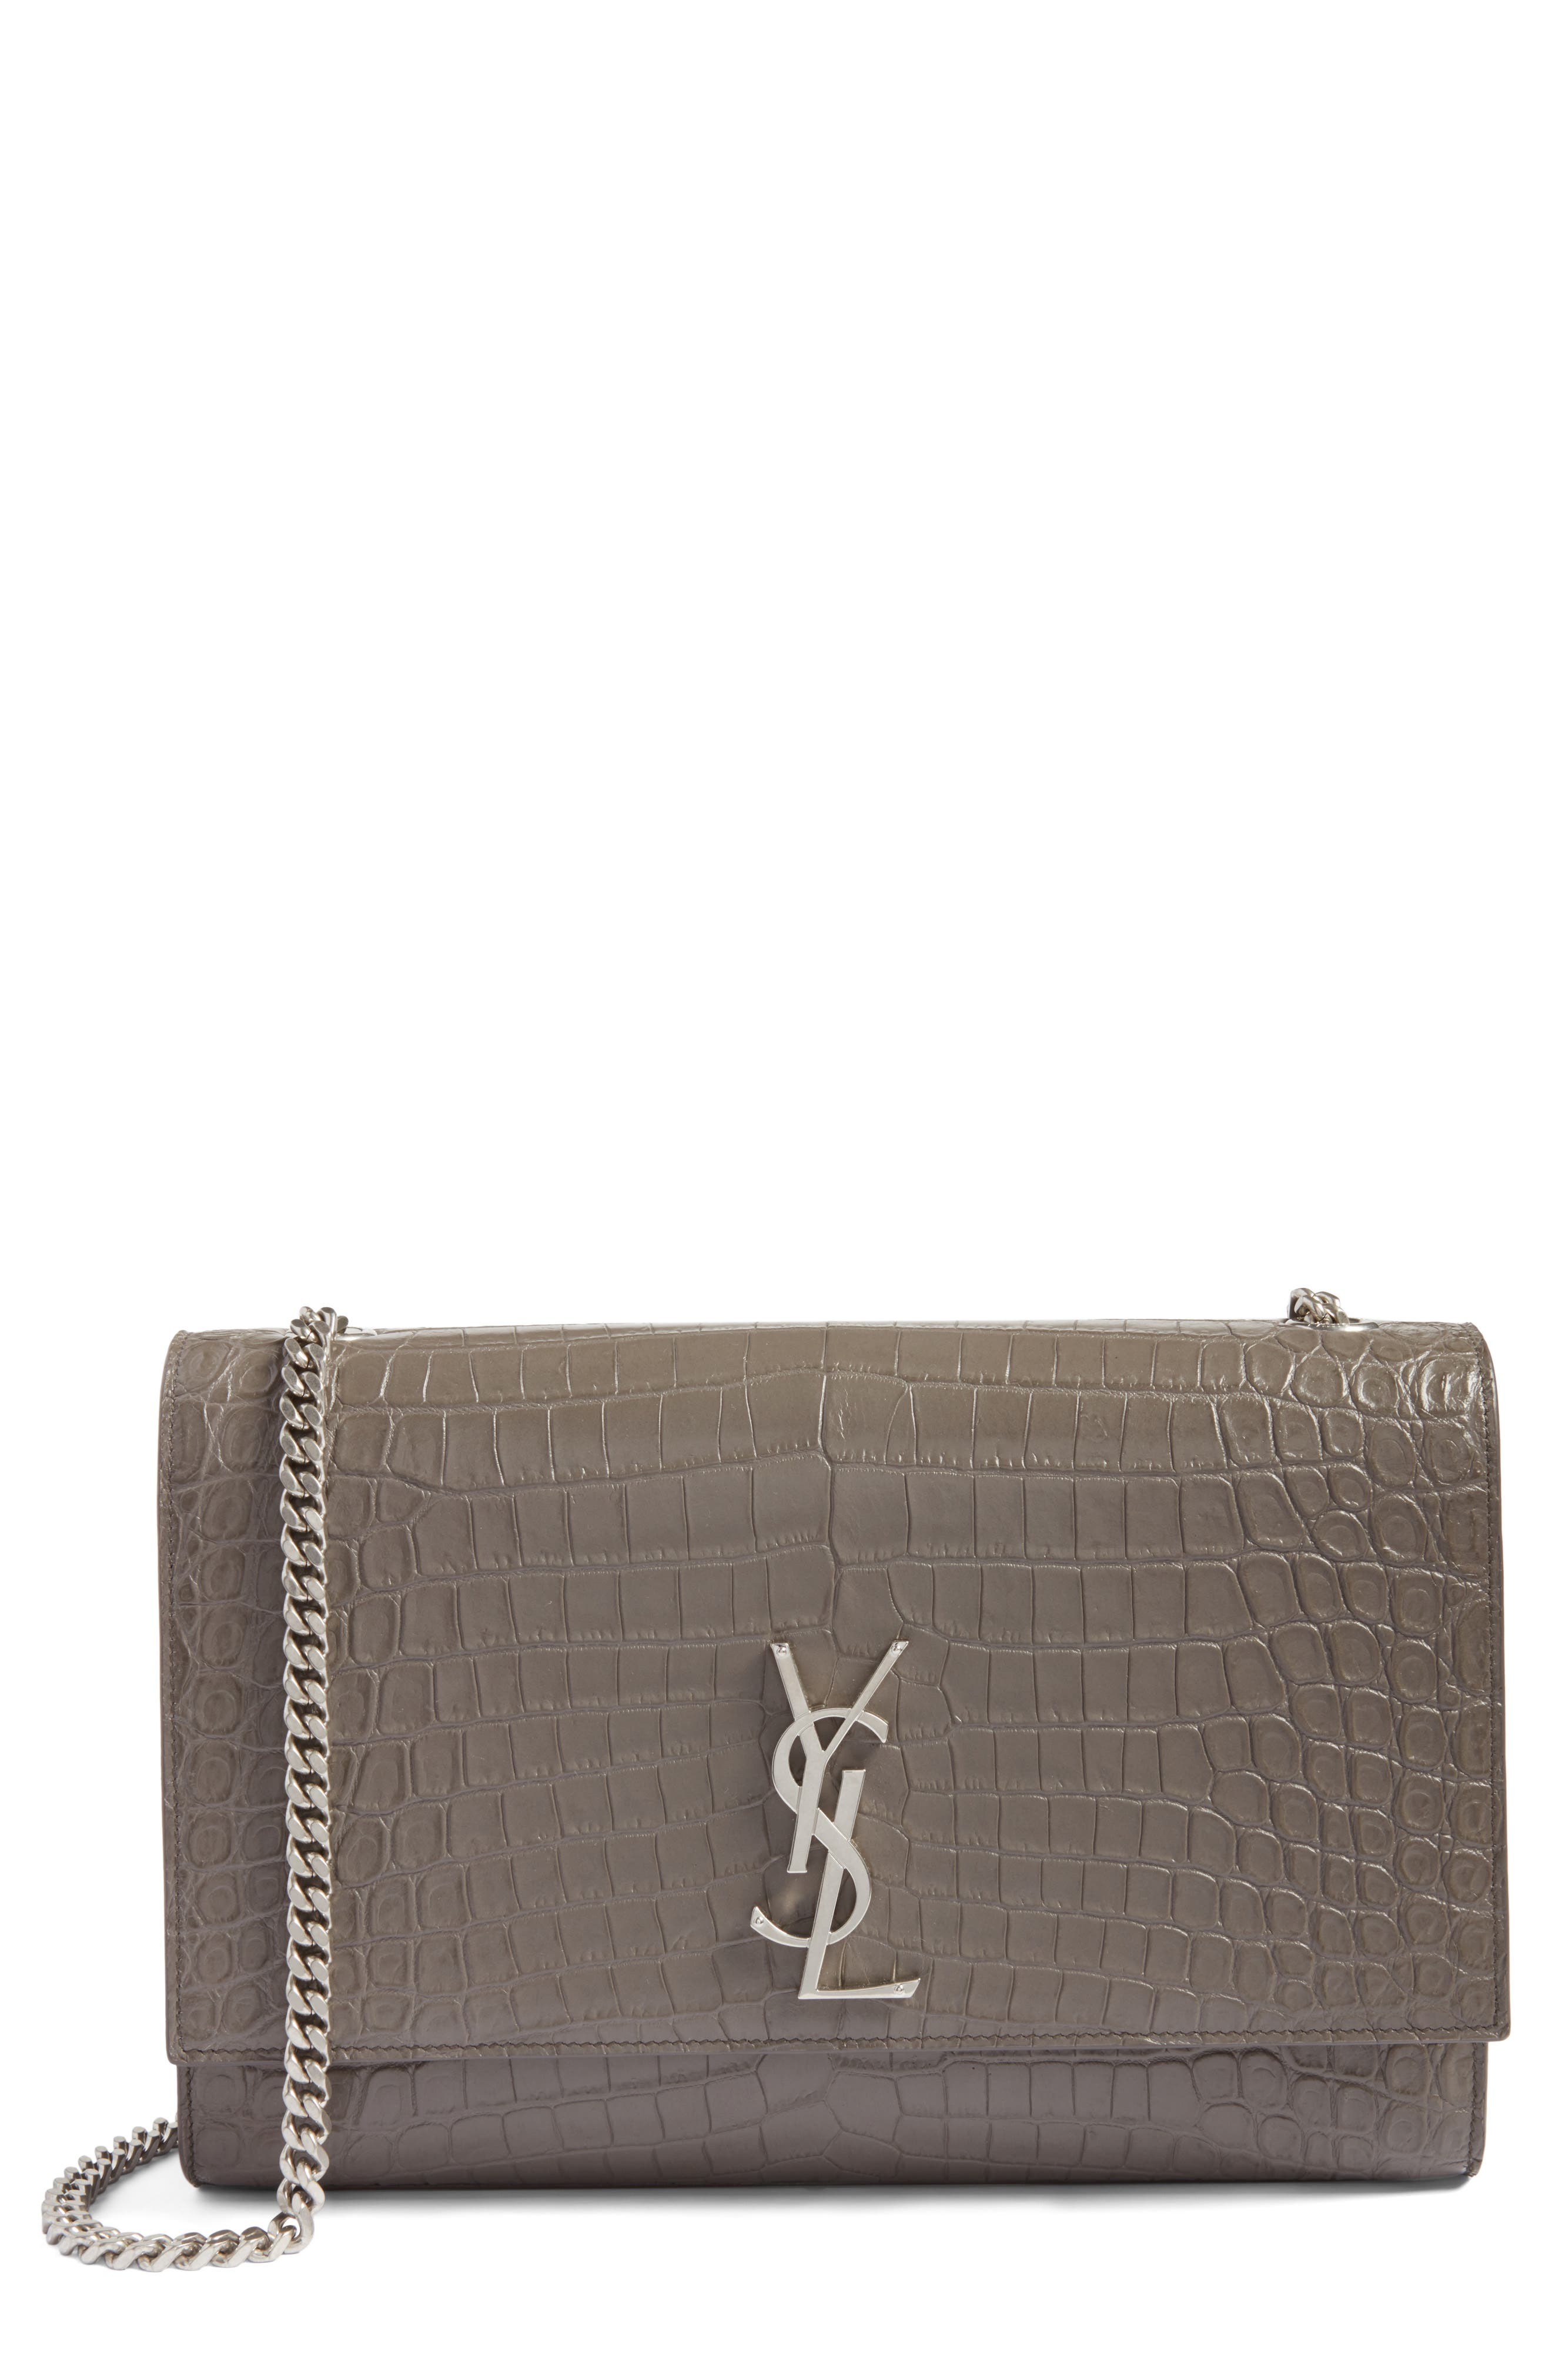 Saint Laurent  LARGE KATE CROC EMBOSSED CALFSKIN LEATHER WALLET ON A CHAIN - GREY